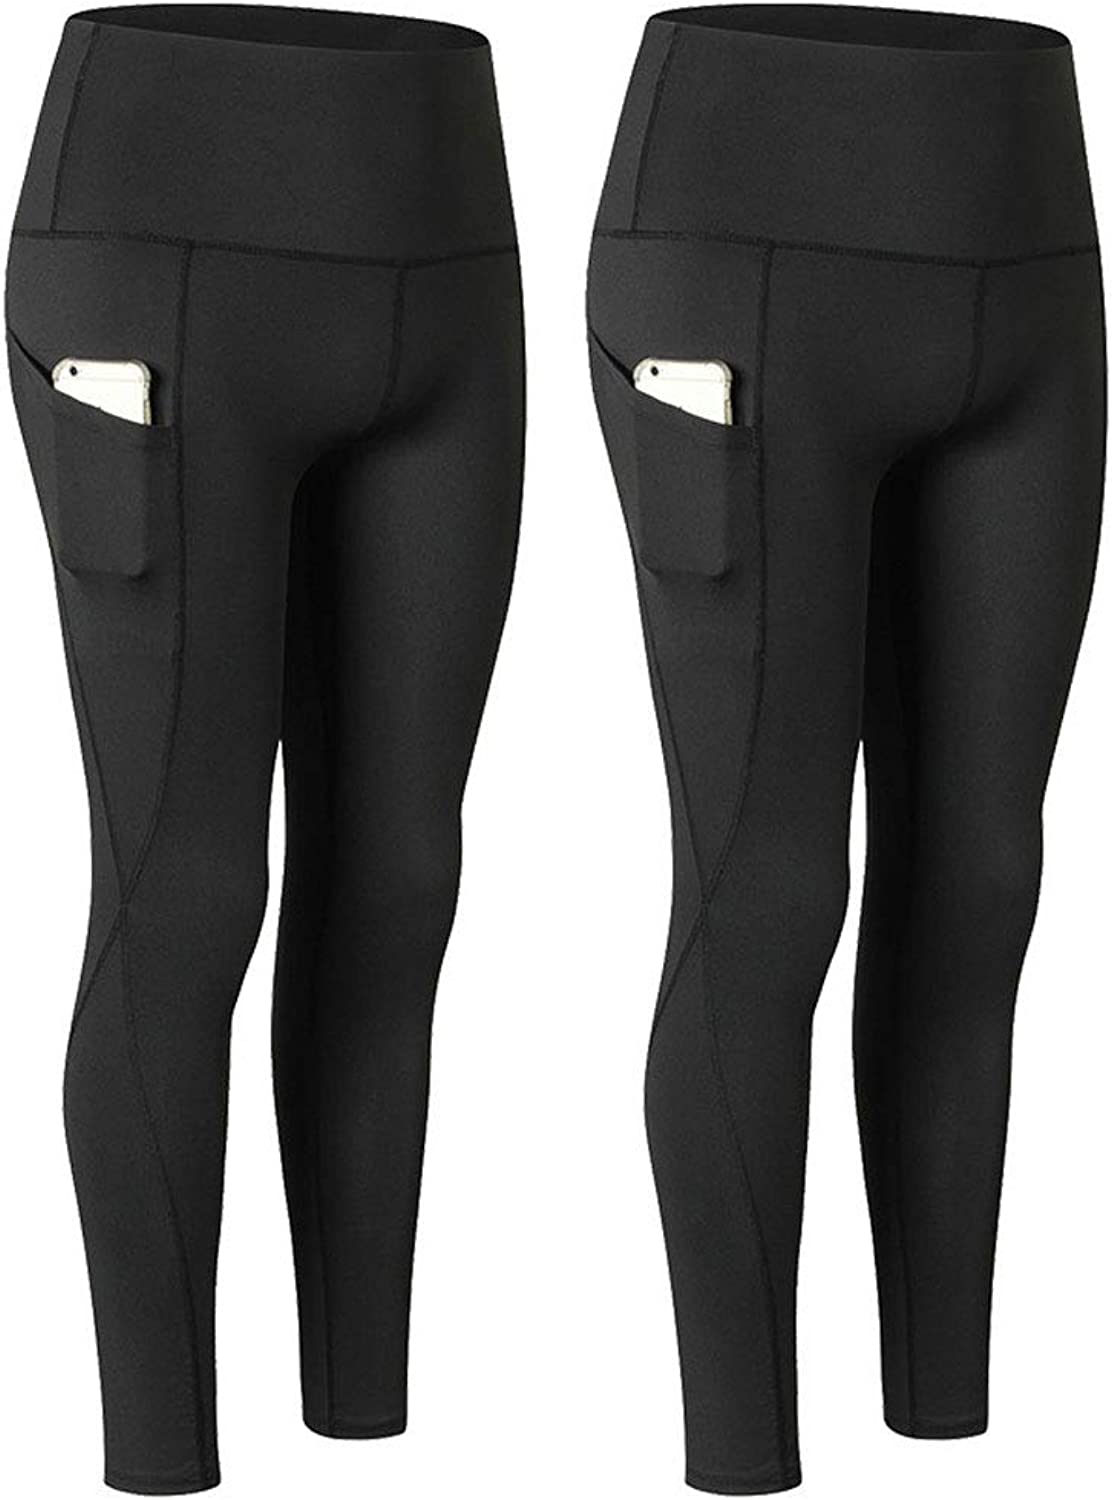 LANBAOSI Yoga Pants with Pockets, High Waist Tummy Control Workout Leggings for Women 2 Pack